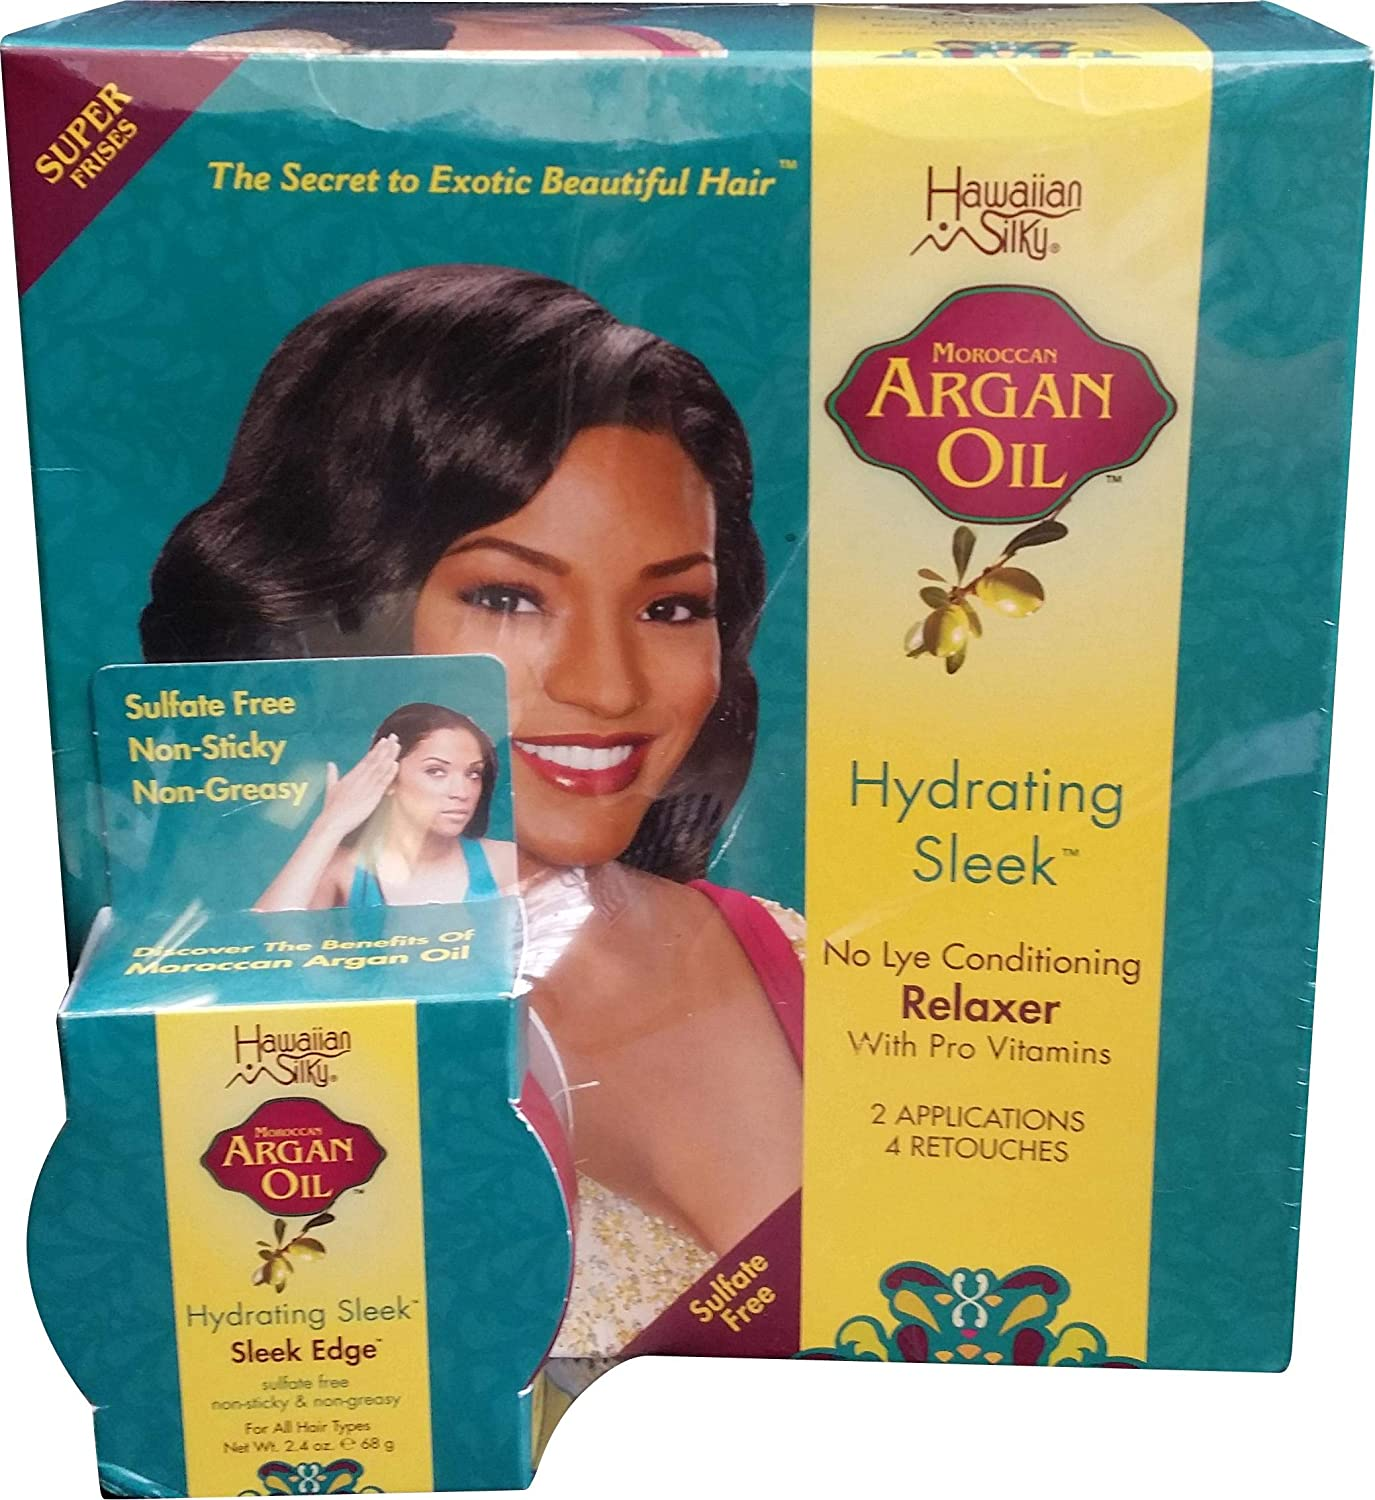 Clearance SALE Limited time Hawaiian New item Silky Argan No Lye 2 Pack of 3 Application Super